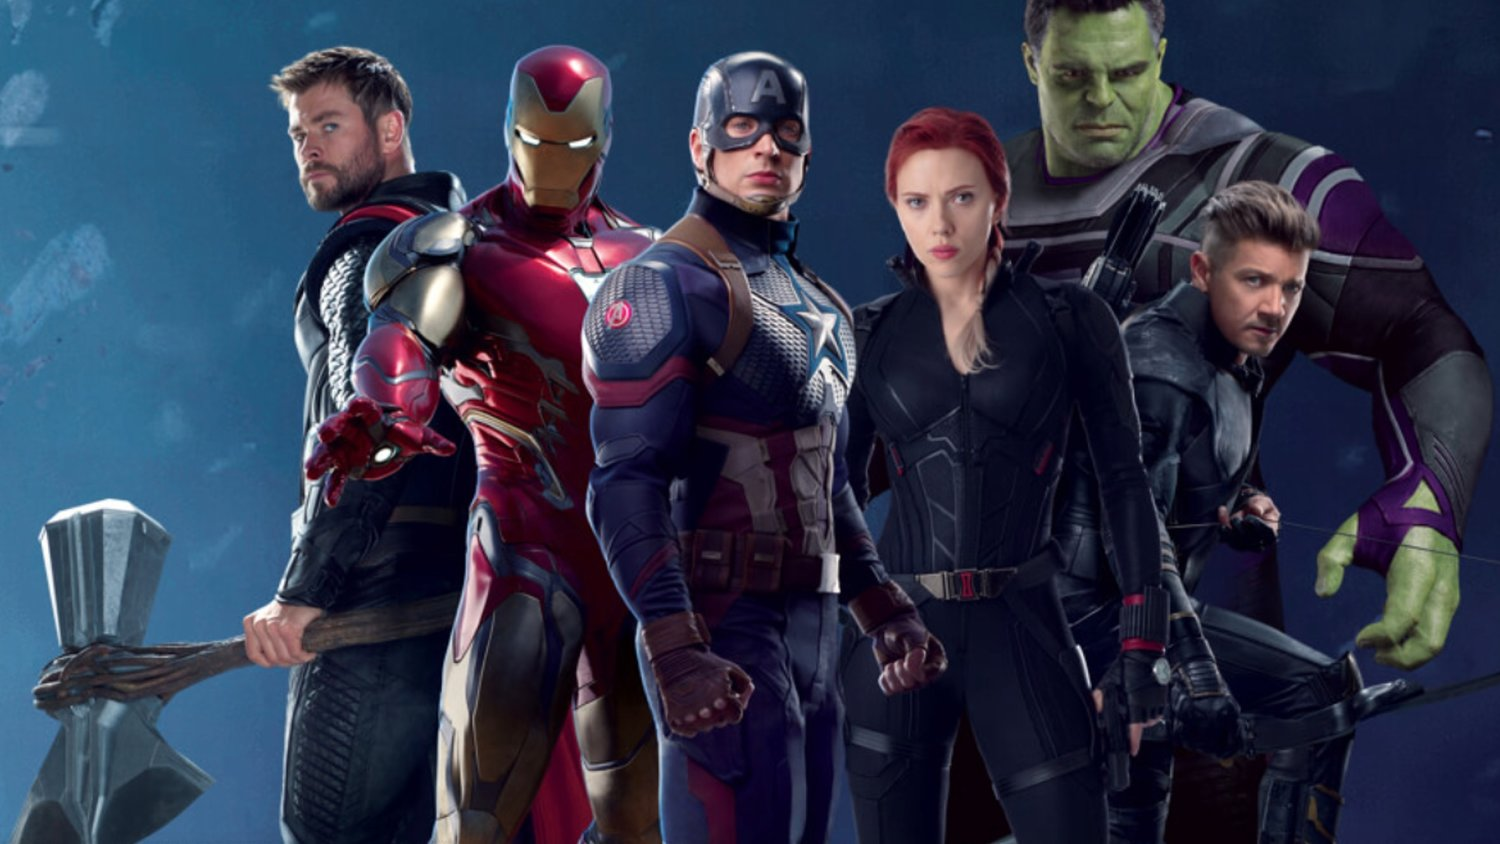 Heres An Official Avengers Endgame Promo Photo Featuring The Team